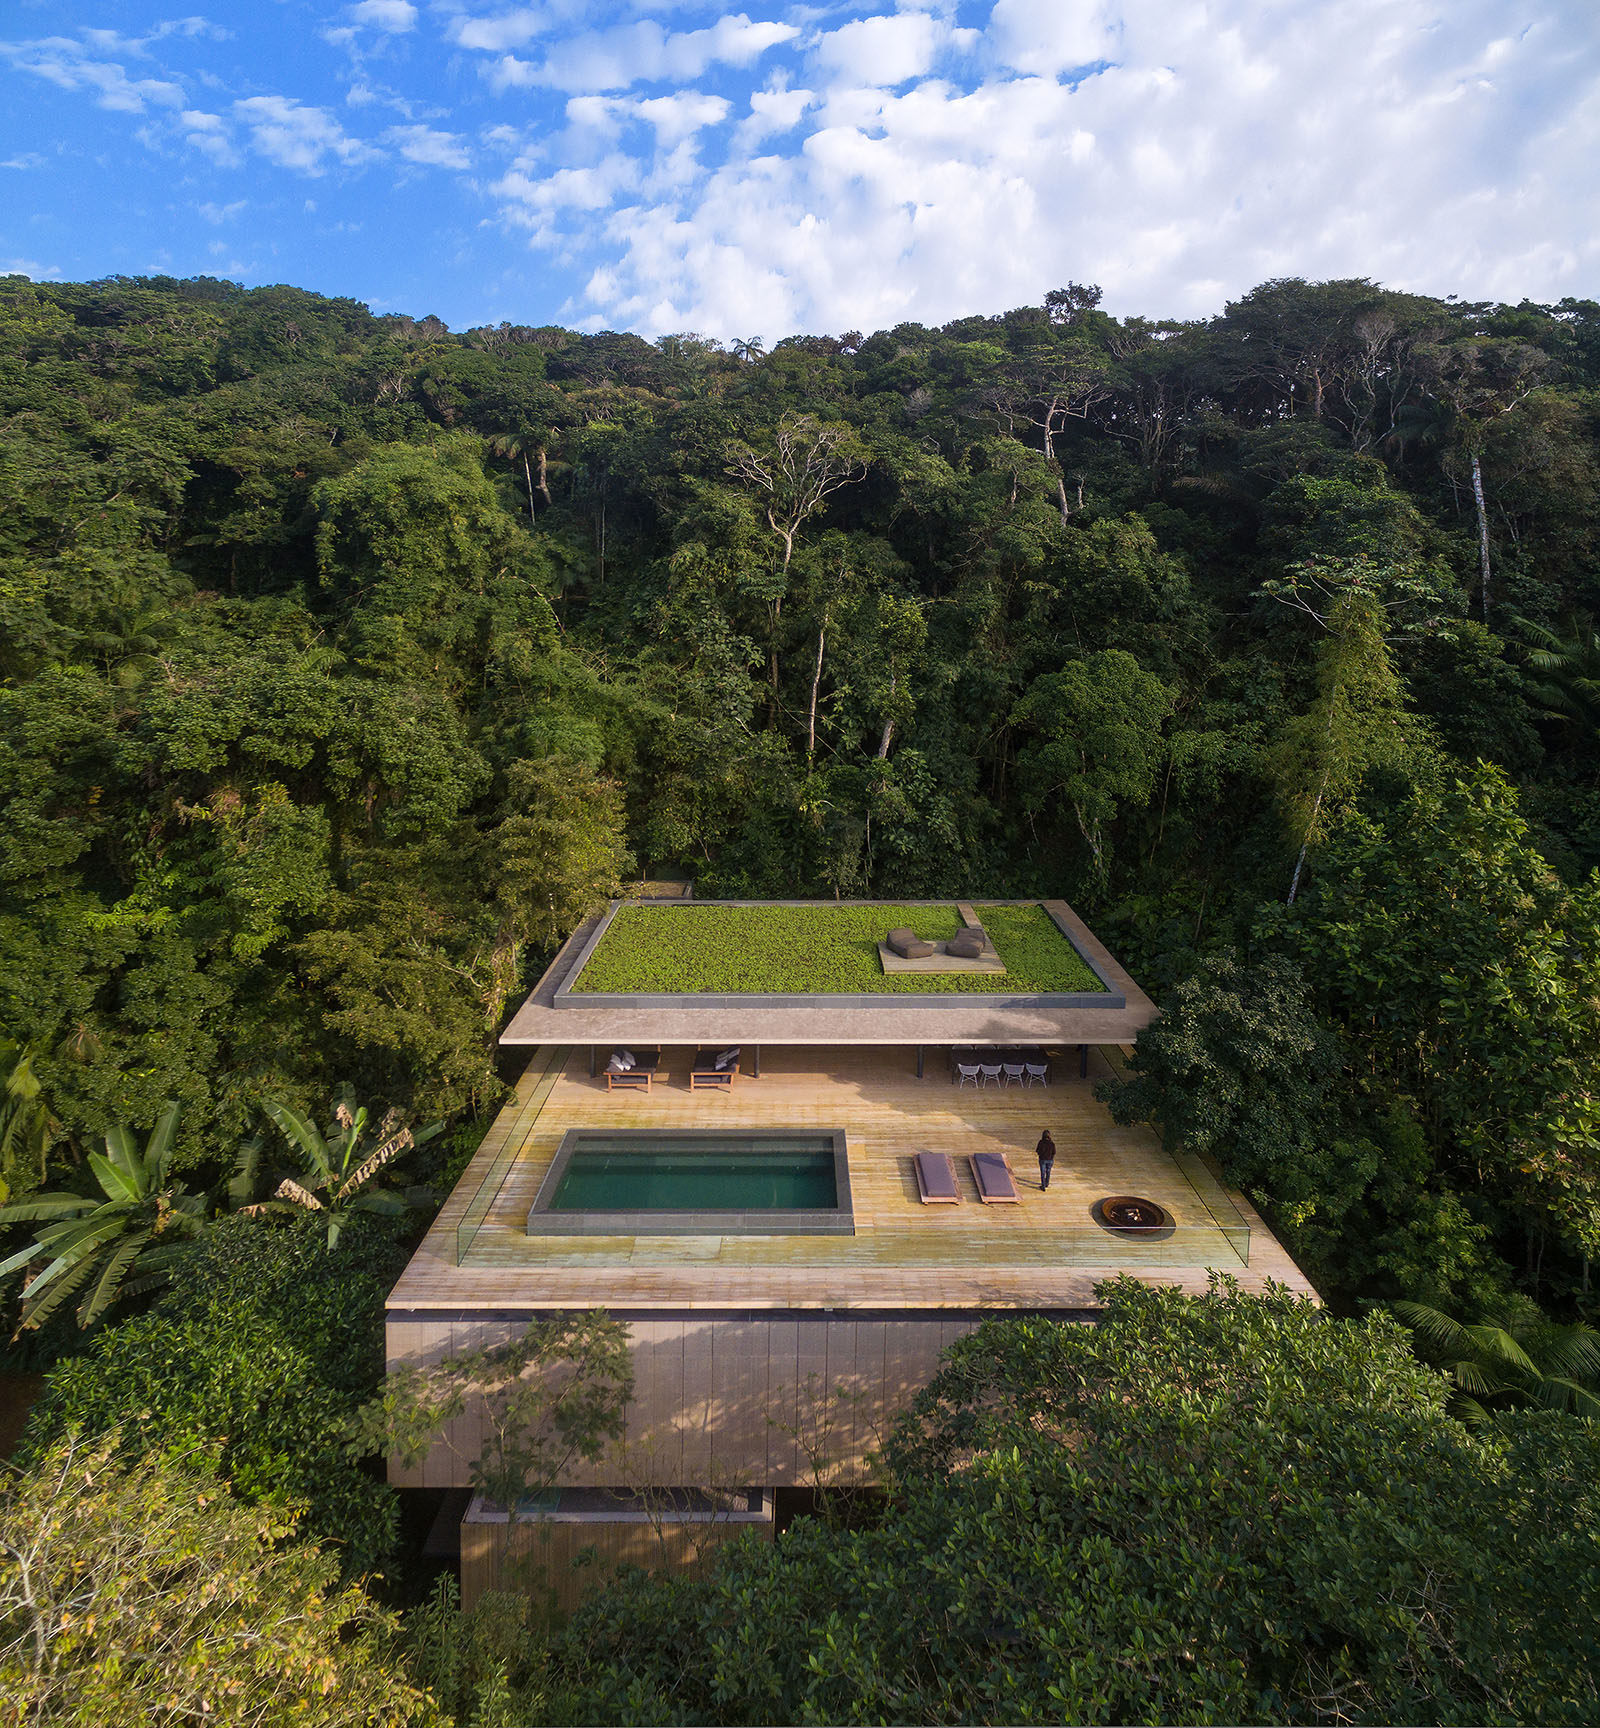 Take a Look Inside the Unique Jungle House by Studio MK 27 4